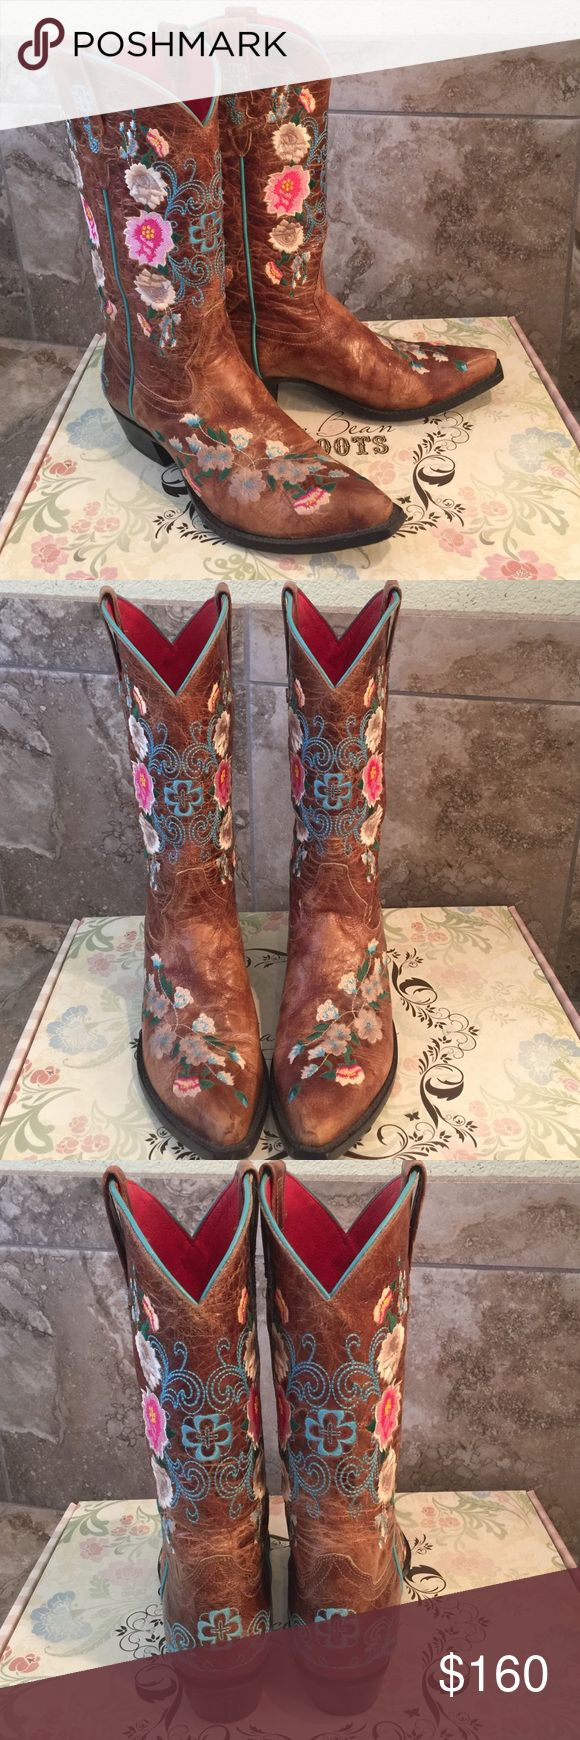 """Macie Bean Snip Toe Floral Boots size 8 Stunning Macie Bean Snip Toe Cowboy boots and one of my favorites; only worn 3 times, but sadly, just to narrow for me. (Original box) Brown Mad Cat Leather Foot & Upper 13"""" Height Floral Embroidery on the Foot, Upper & Heel Counter Decorated Pull Straps Turquoise Piping Snip Toe Cushion Insole Cowgirl Heel Channeled Single Stitched Welt Construction Macie Bean Shoes Heeled Boots"""